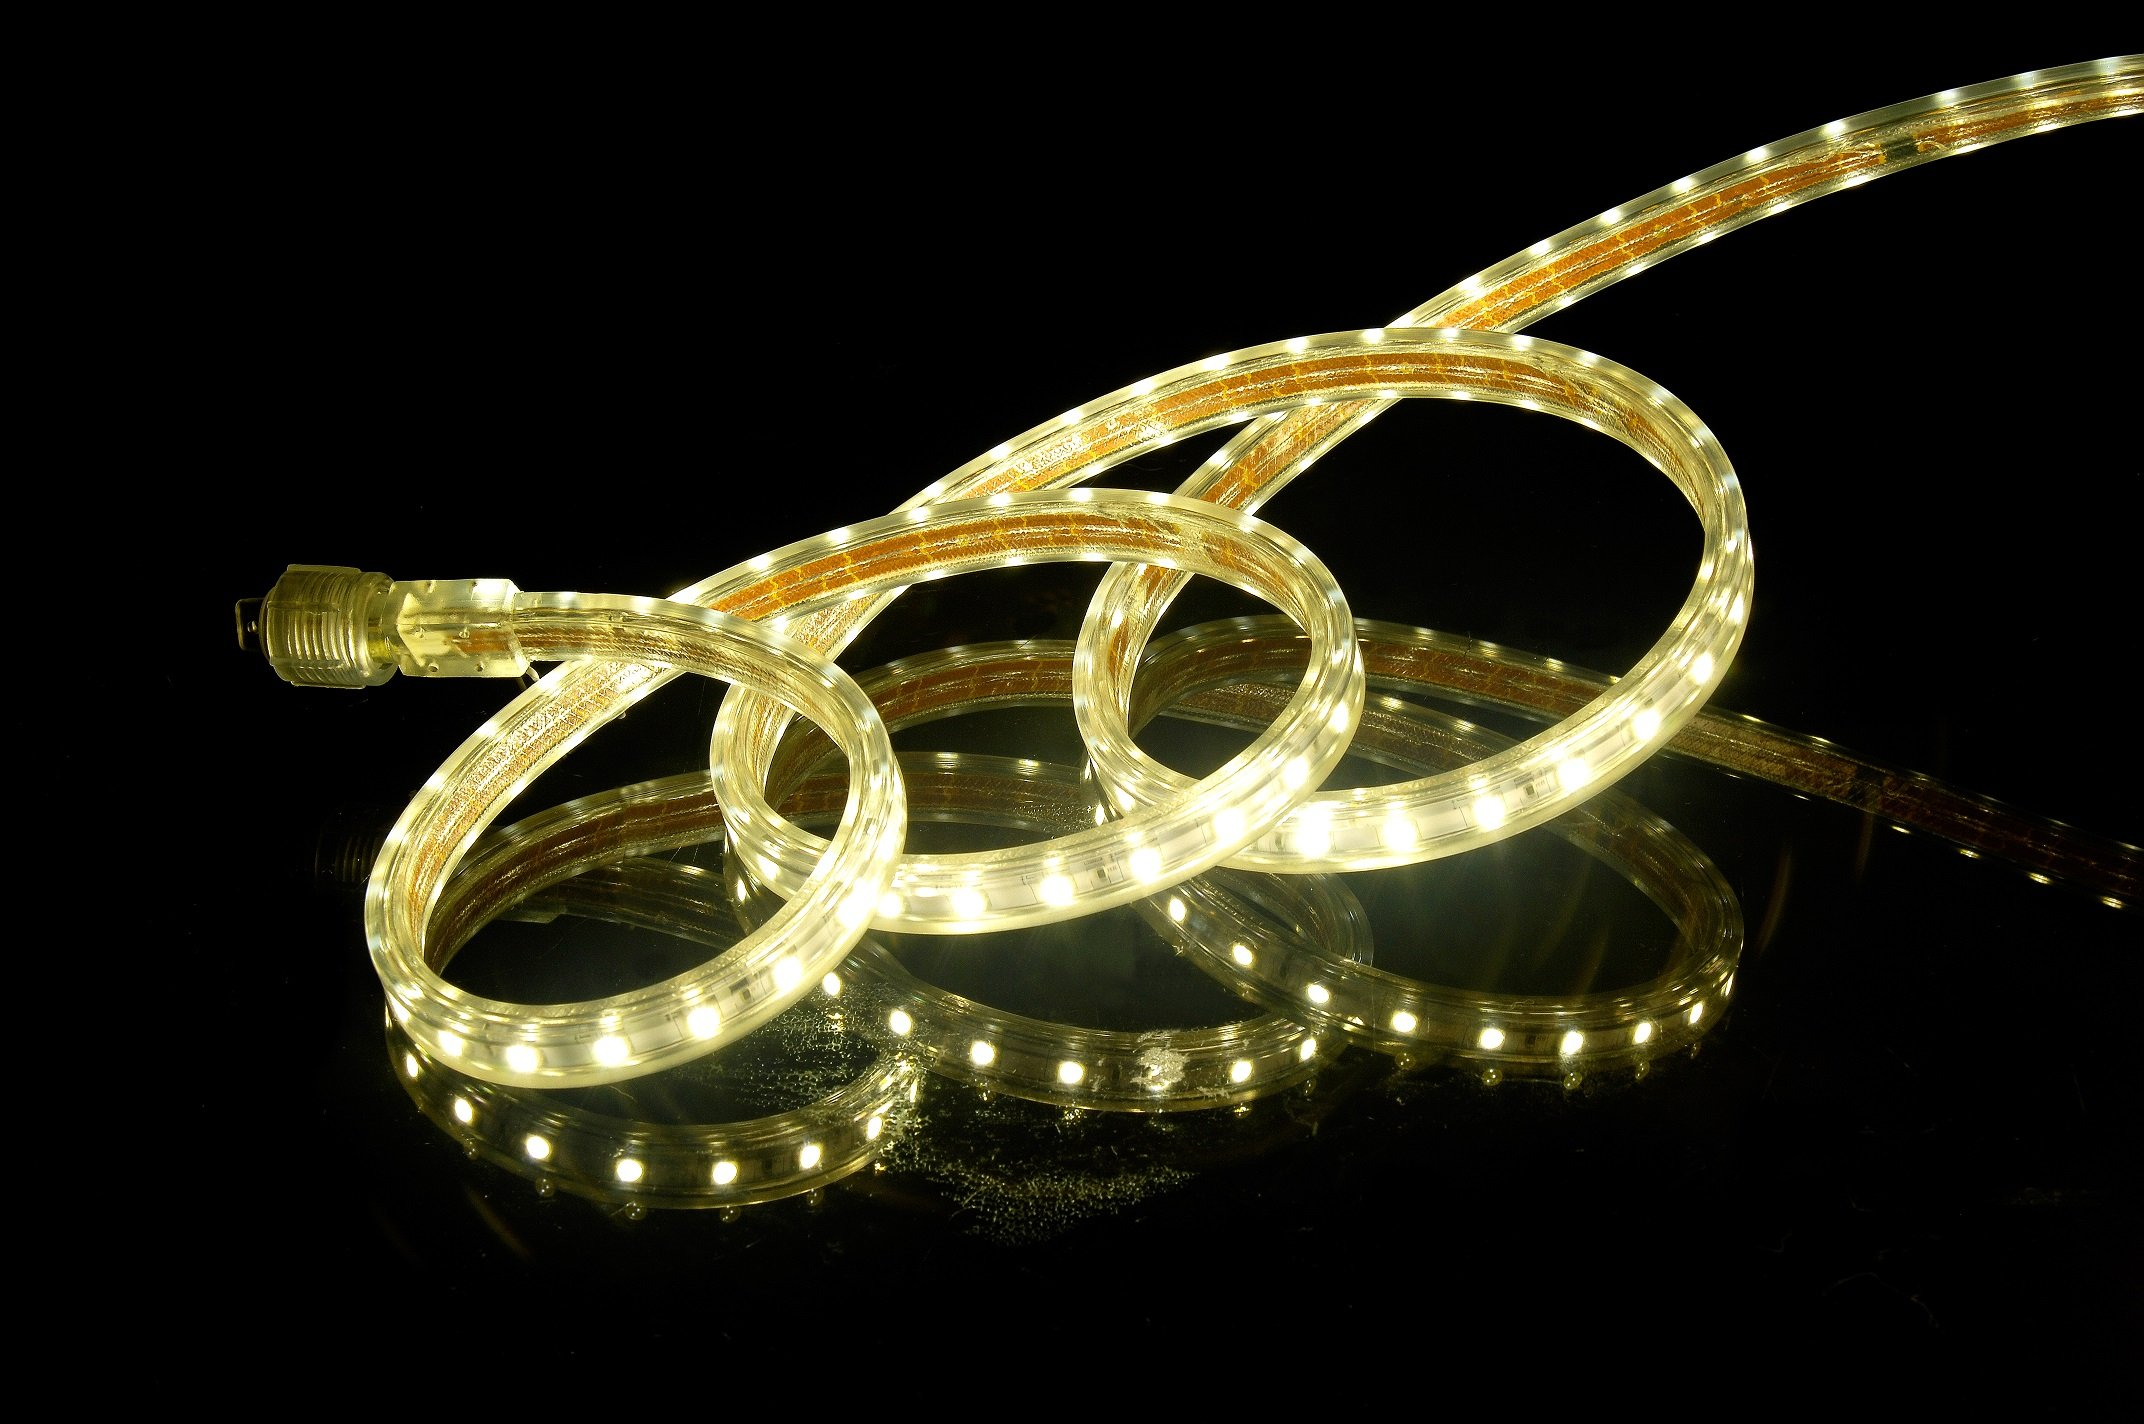 CBConcept UL Listed, 30 Feet, Super Bright 8100 Lumen, 3000K Warm White, Dimmable, 110-120V AC Flexible Flat LED Strip Rope Light, 540 Units 5050 SMD LEDs, Indoor/Outdoor Use, [Ready to use]